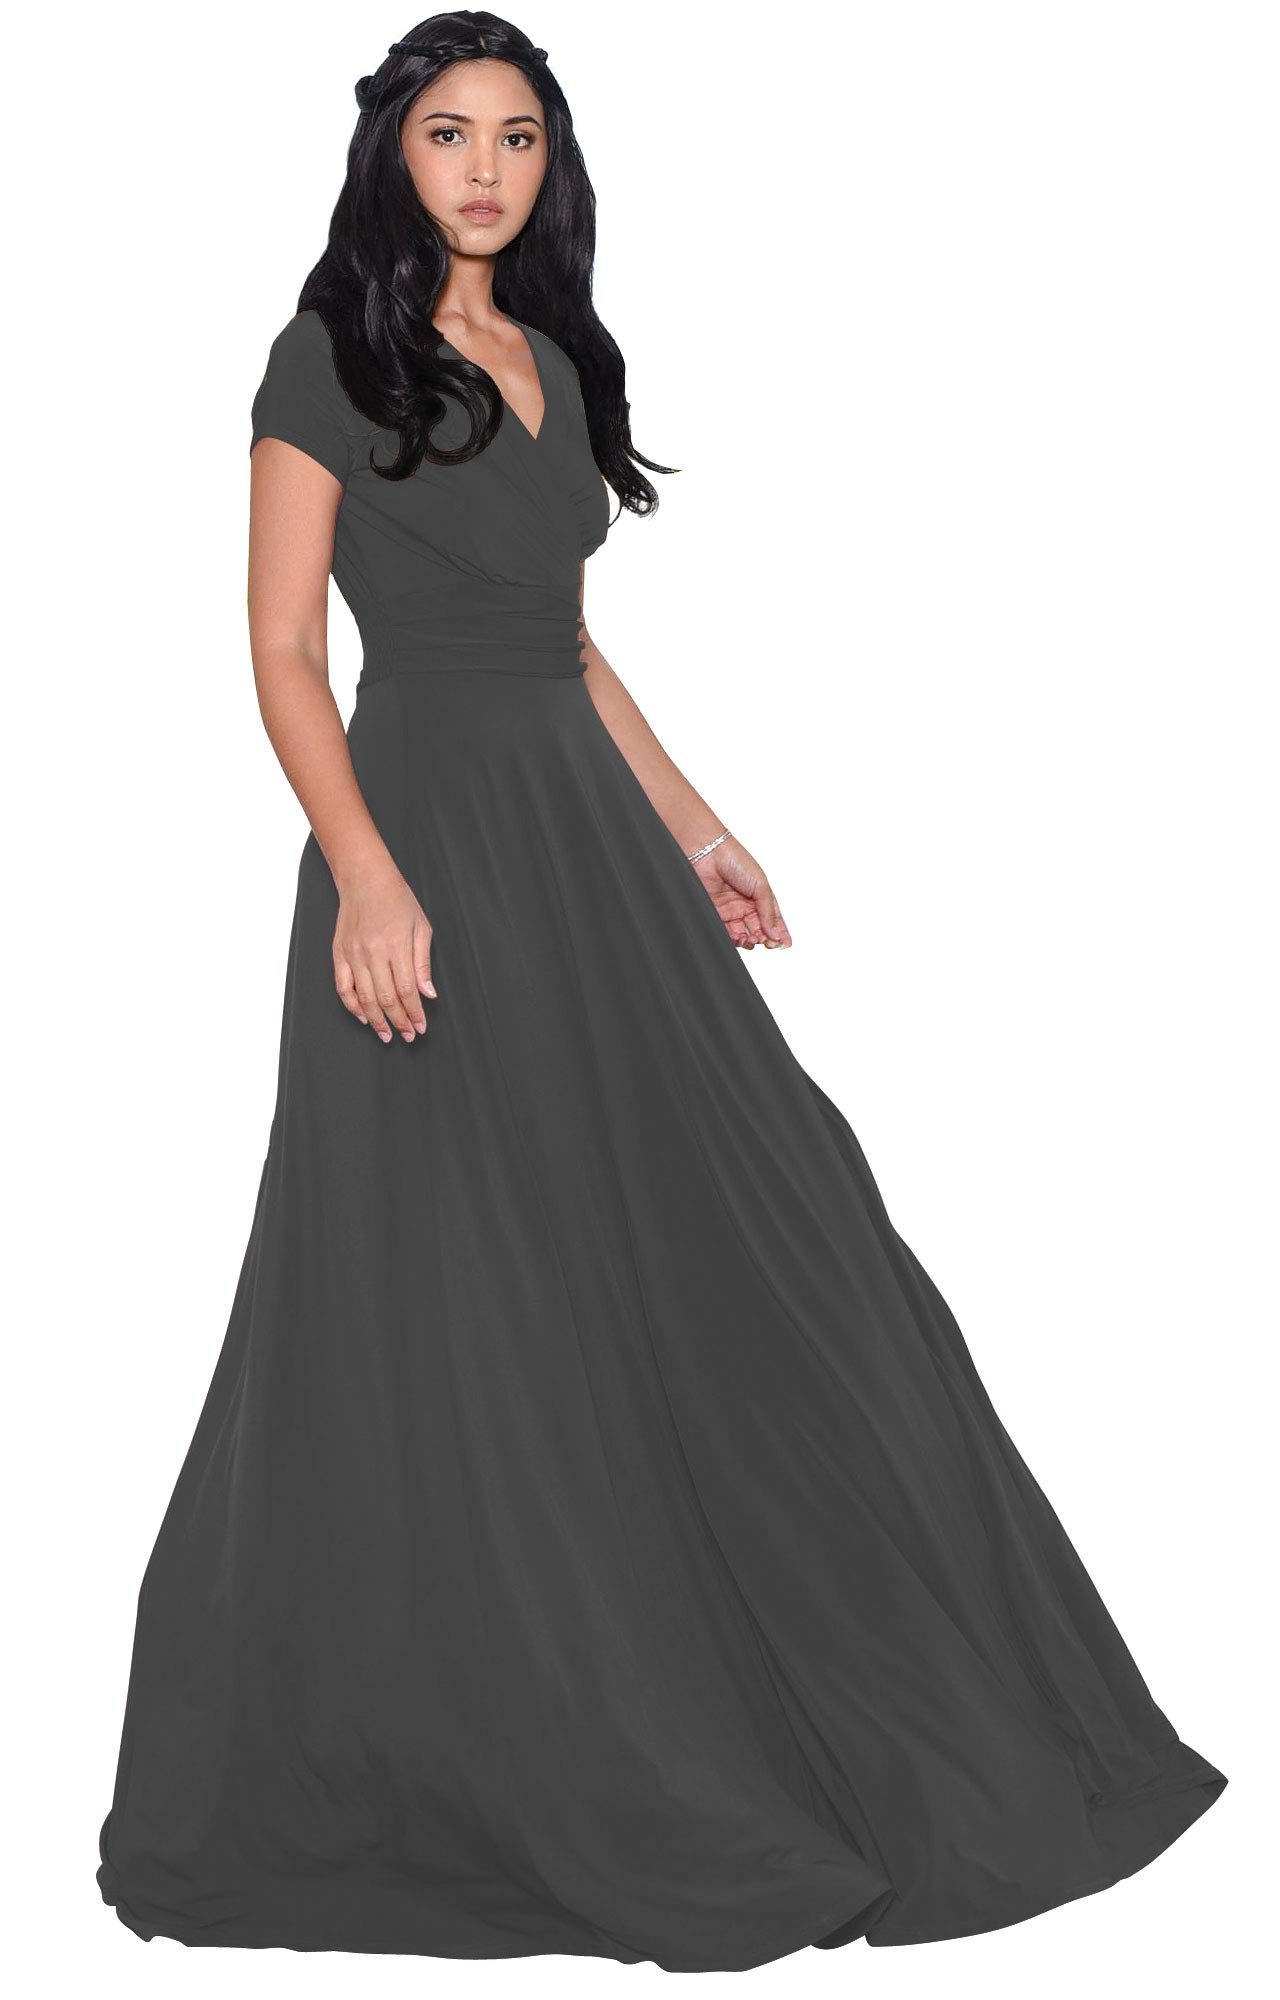 Mother Of The Bride Dresses - Womens Sexy Cap Short Sleeve V-Neck Flowy Cocktail Gown